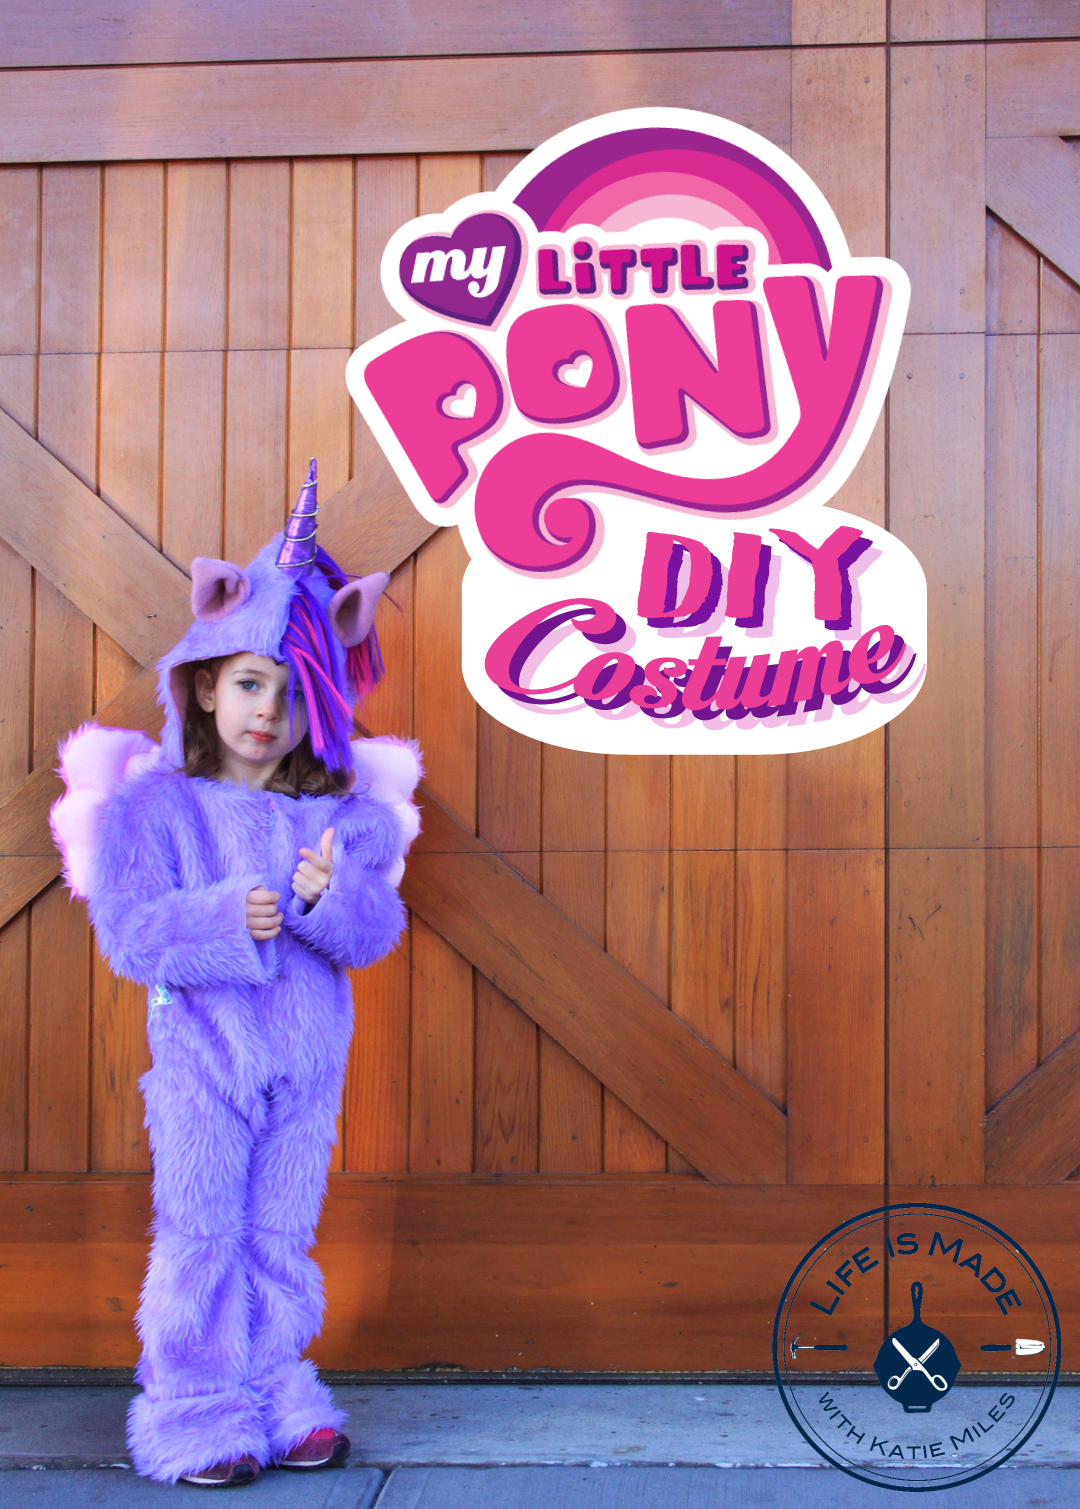 My Little Pony Costume // Life is Made with Katie Miles // www.lifeismade.com